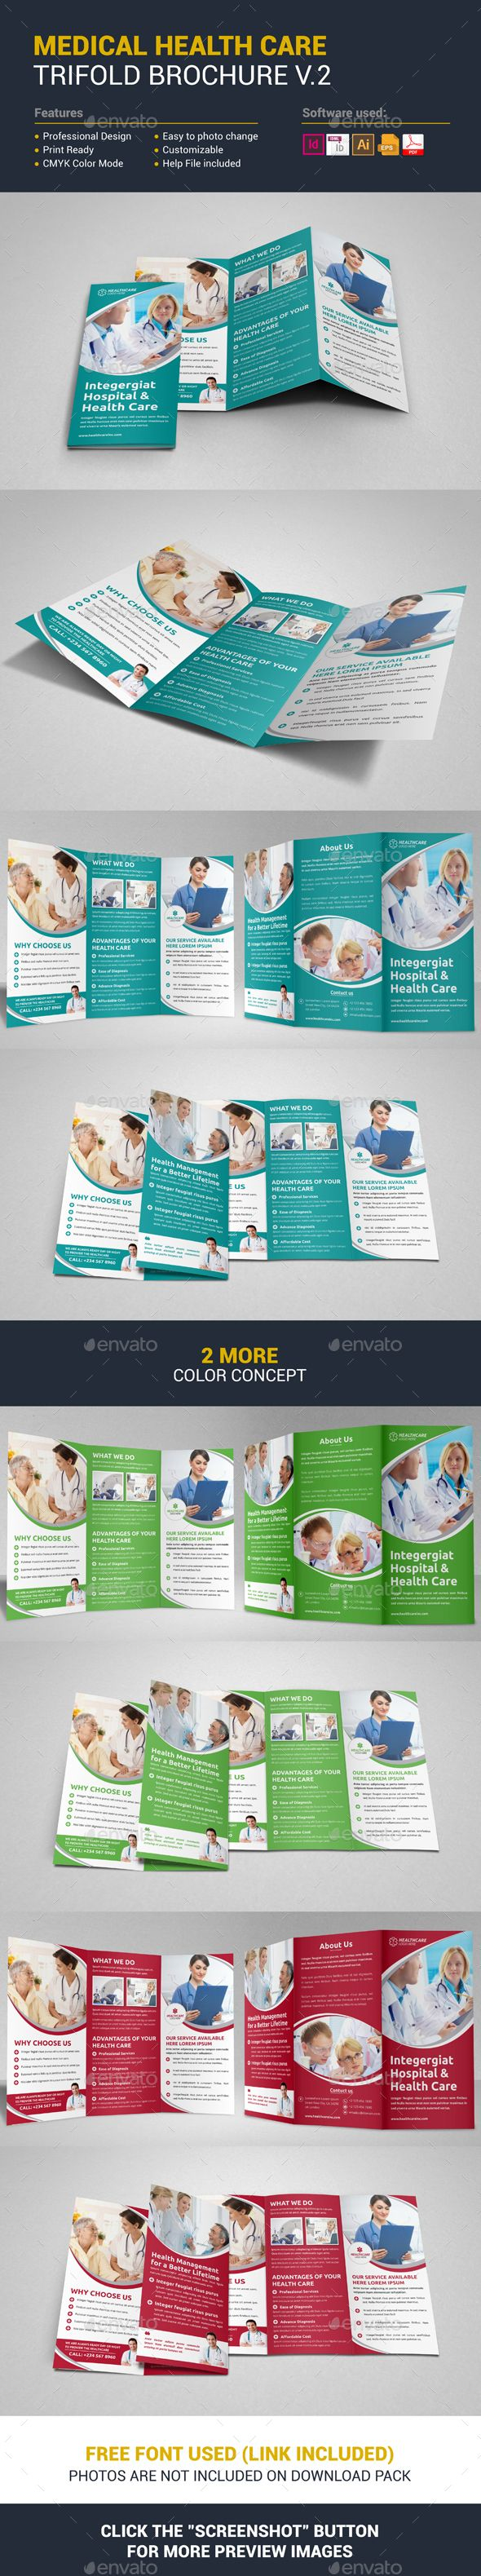 Medical Health Care Trifold Brochure Template Vector Eps Indesign